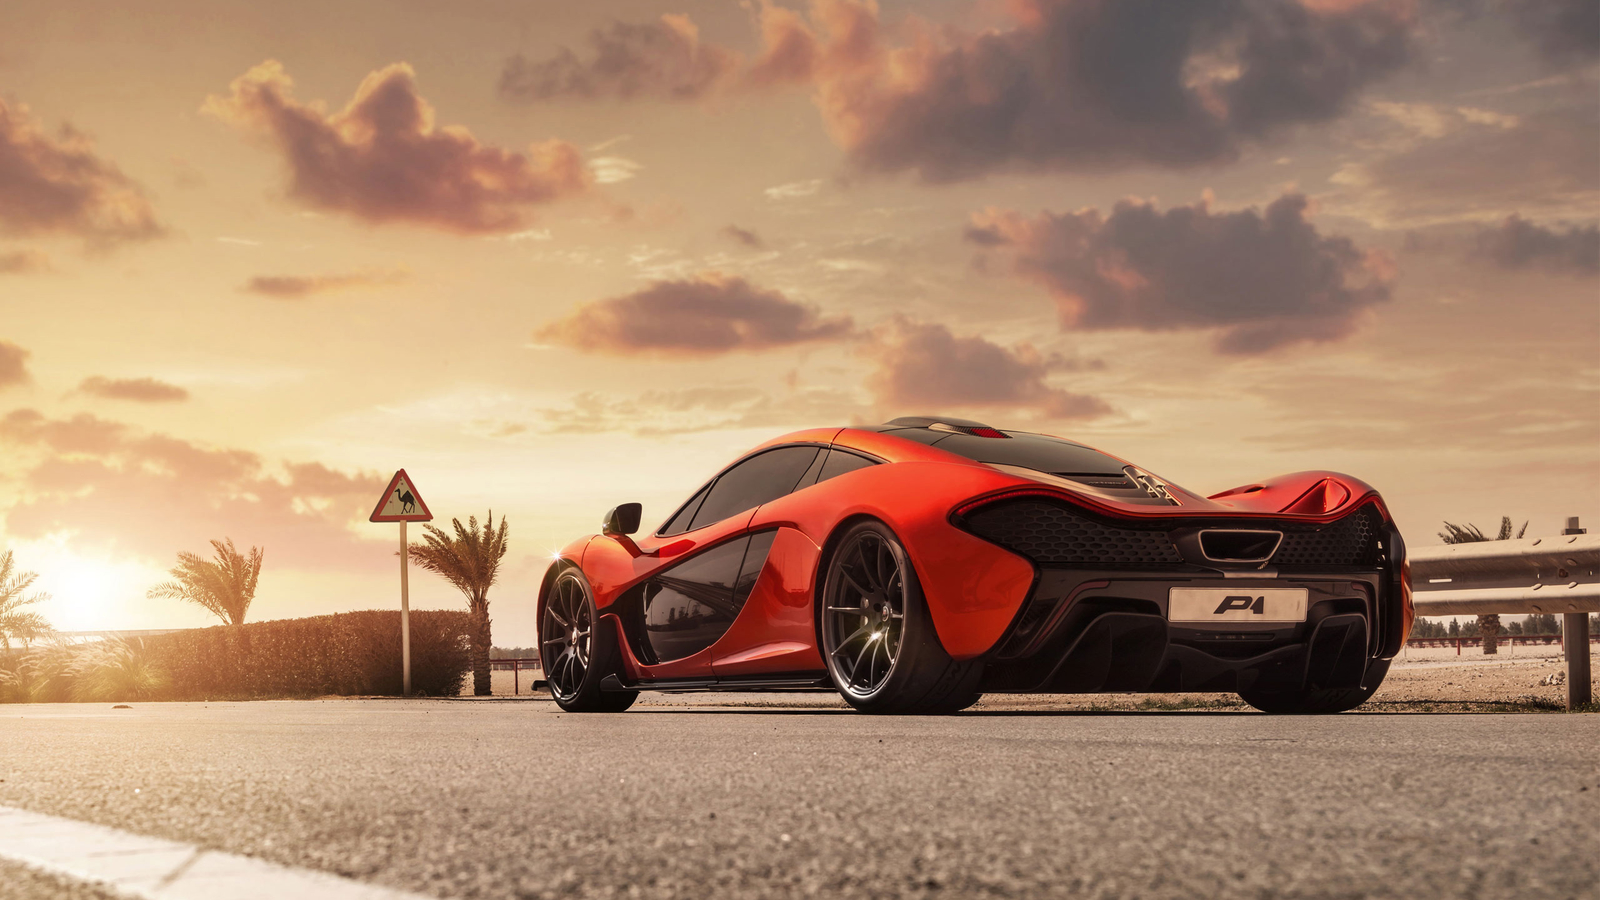 McLaren supercar wallpaper download 49710